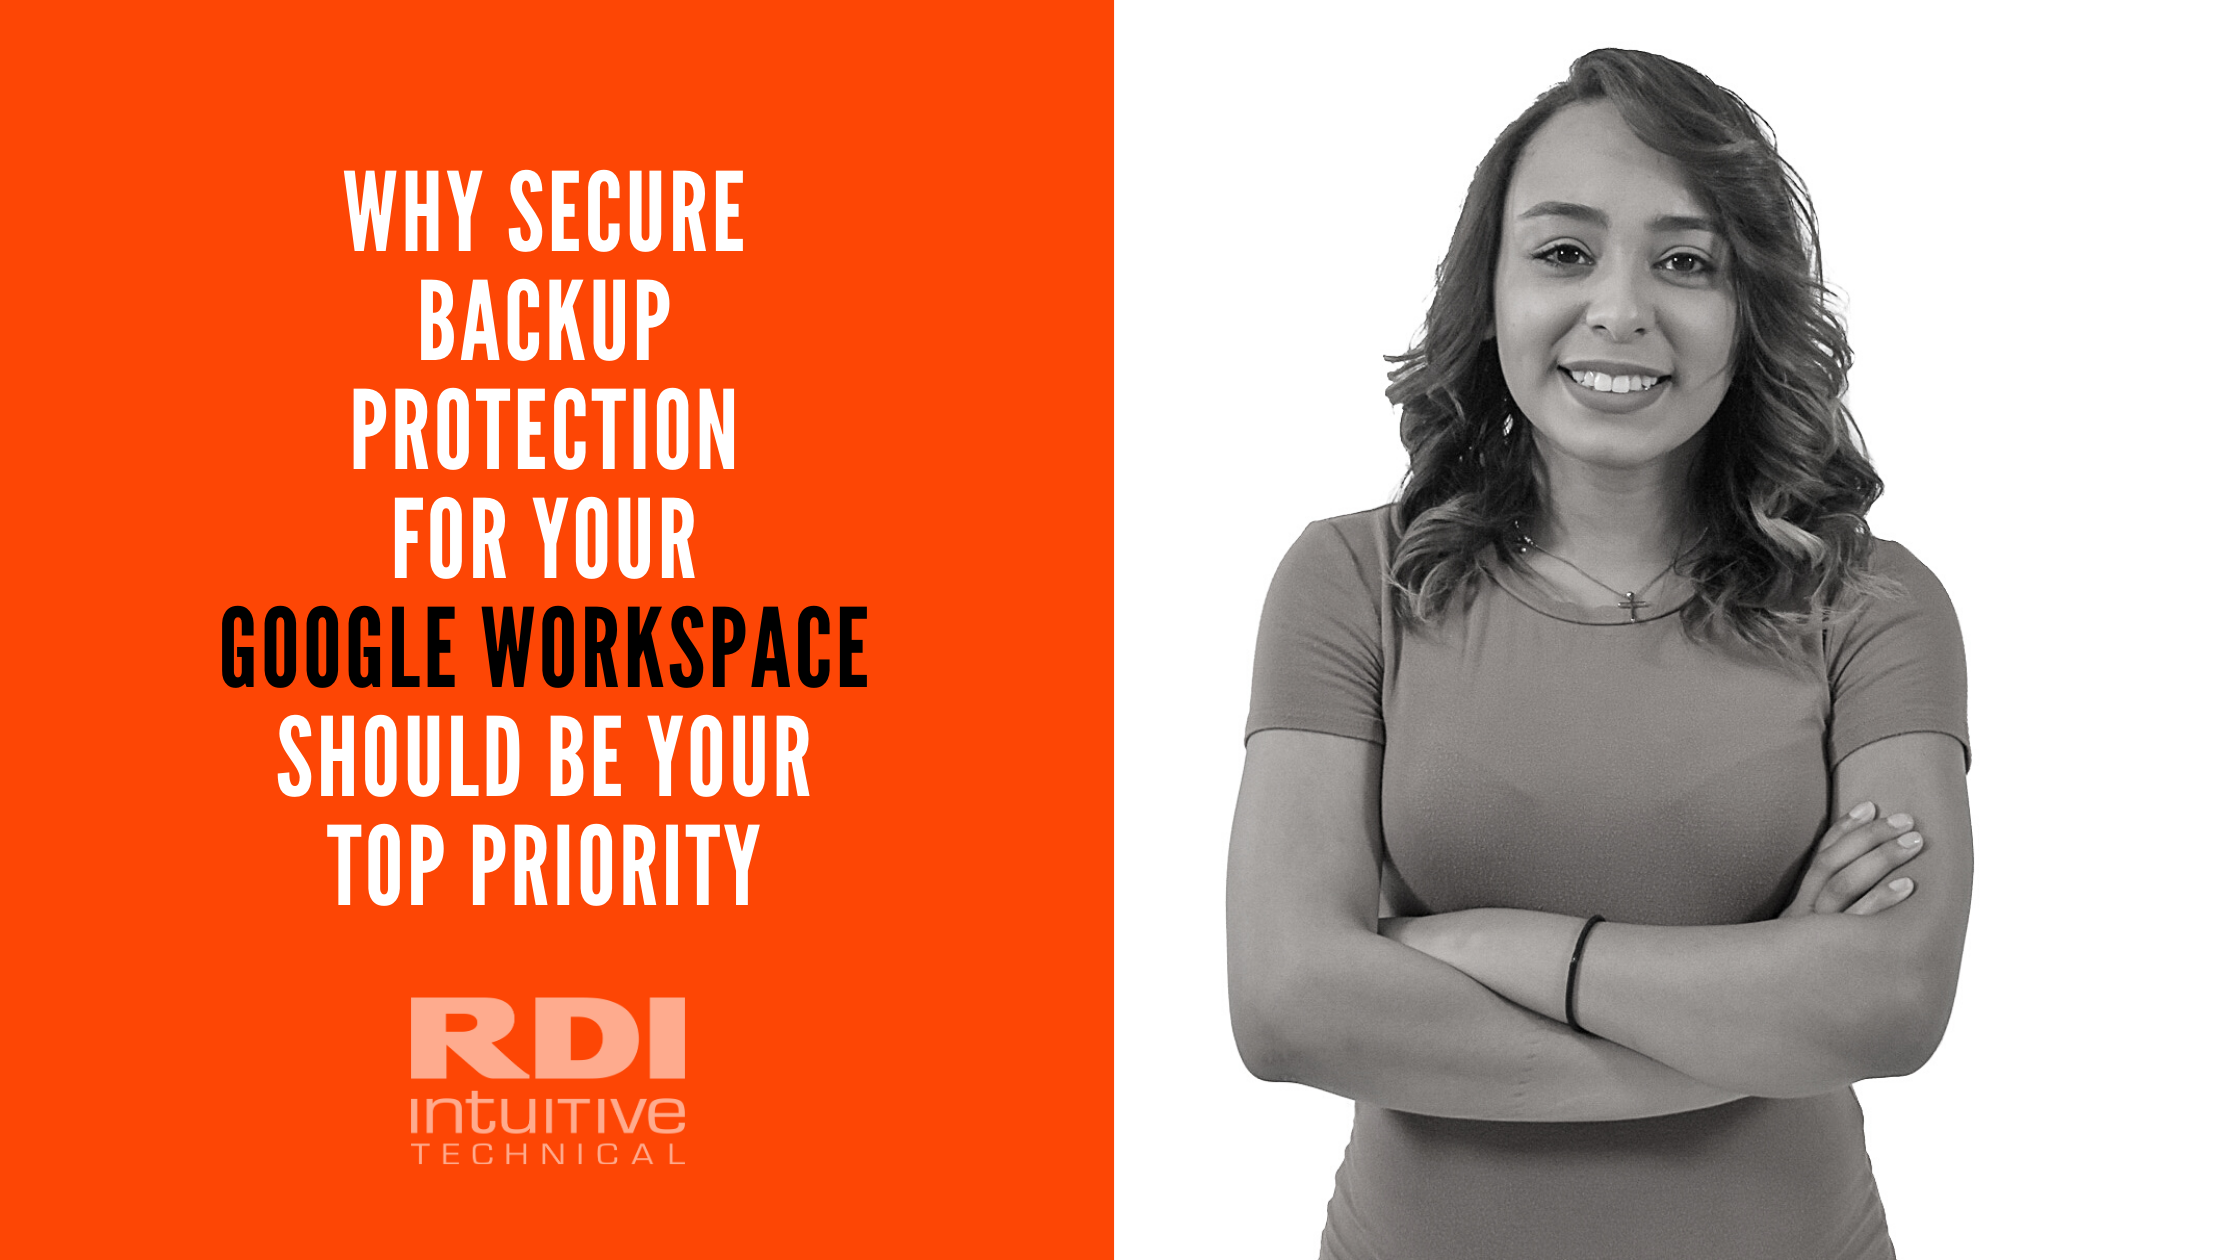 RDI Intuitive Technical - Why Secure Backup Protection for Your Google Workspace Should Be Your Top Priority